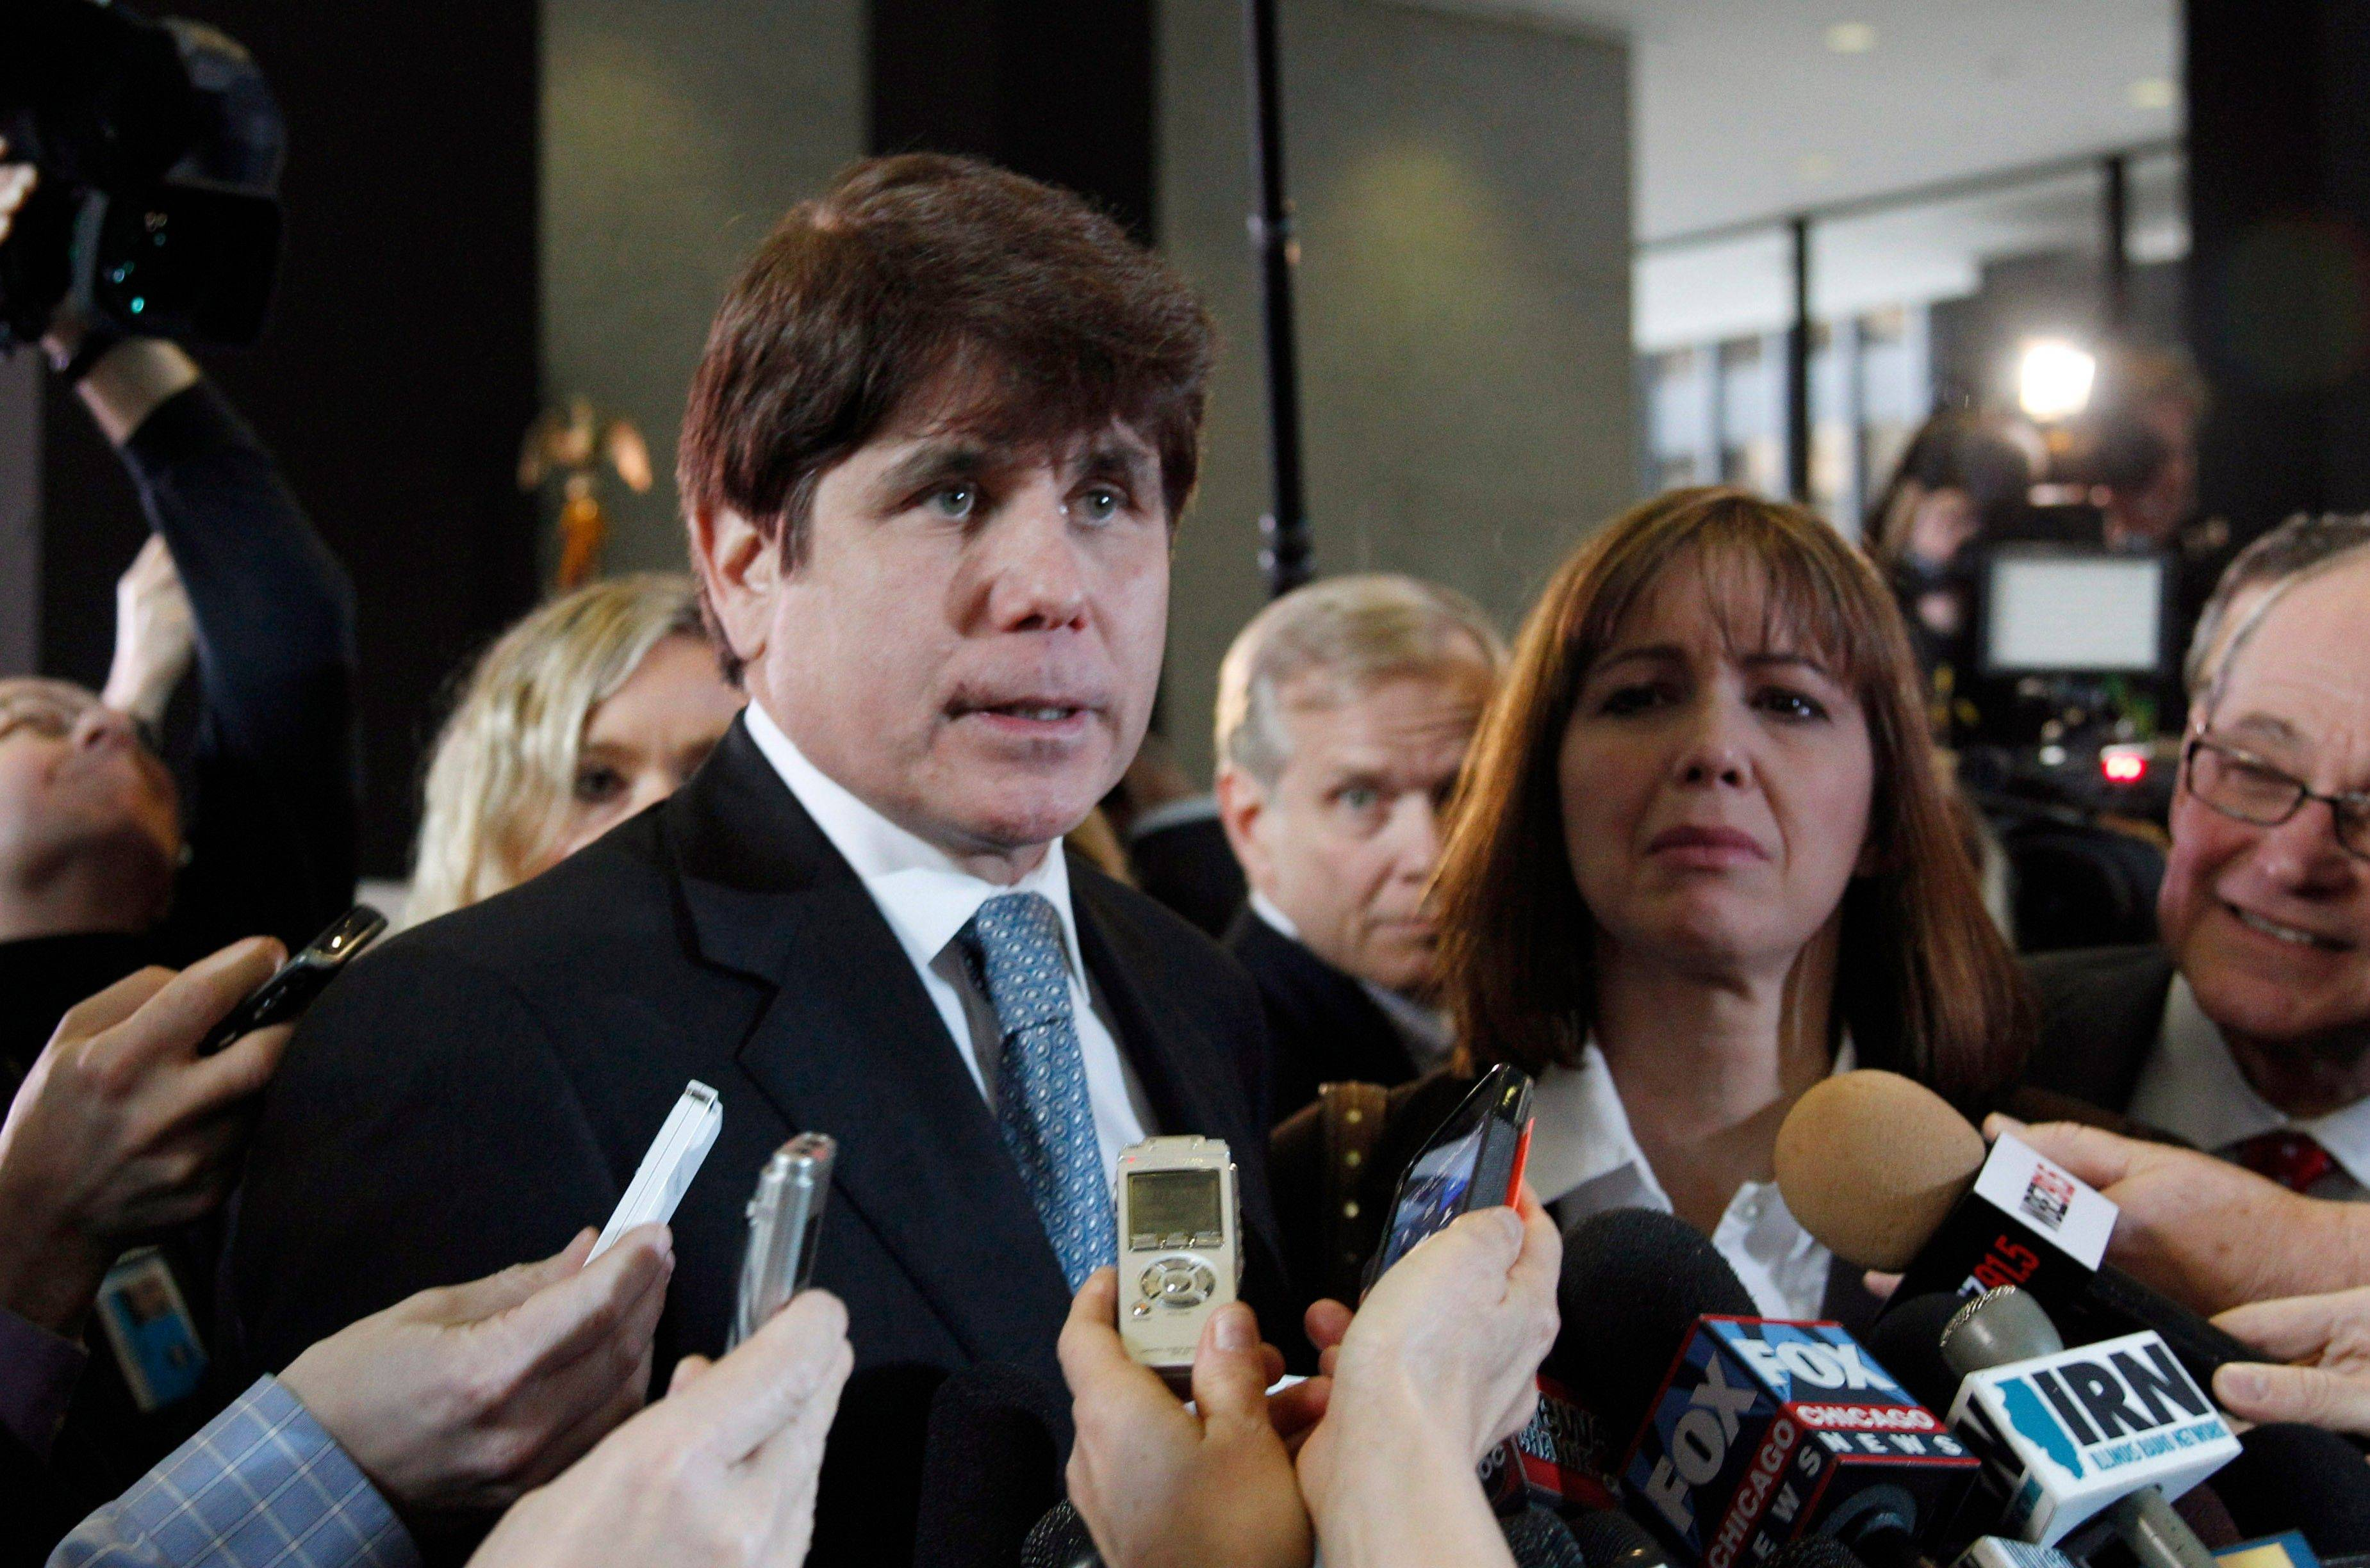 Former Illinois Gov. Rod Blagojevich was granted on Tuesday an extra month before he reports to prison to begin his 14-year sentence.